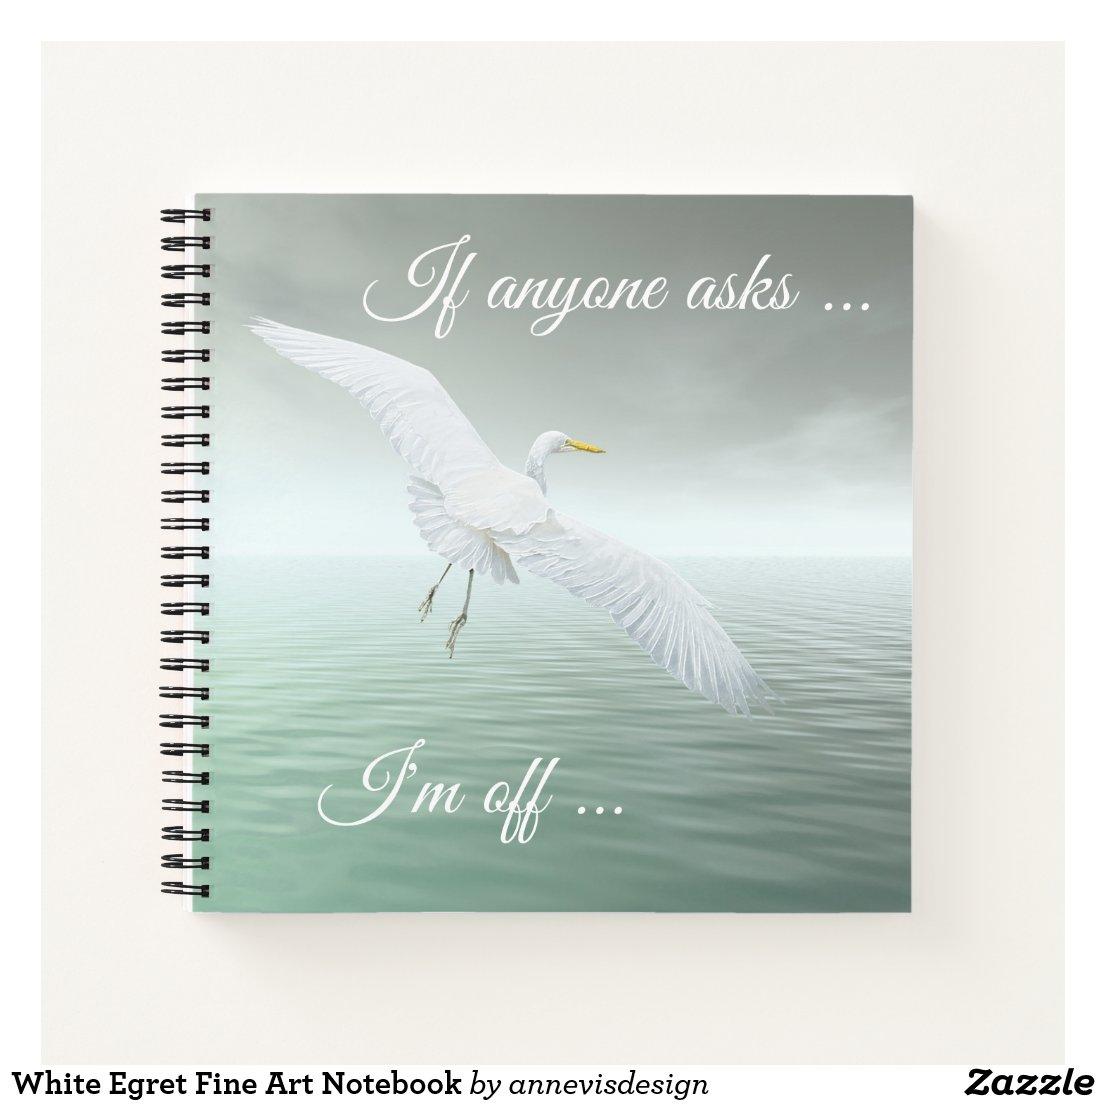 White Egret Fine Art Notebook